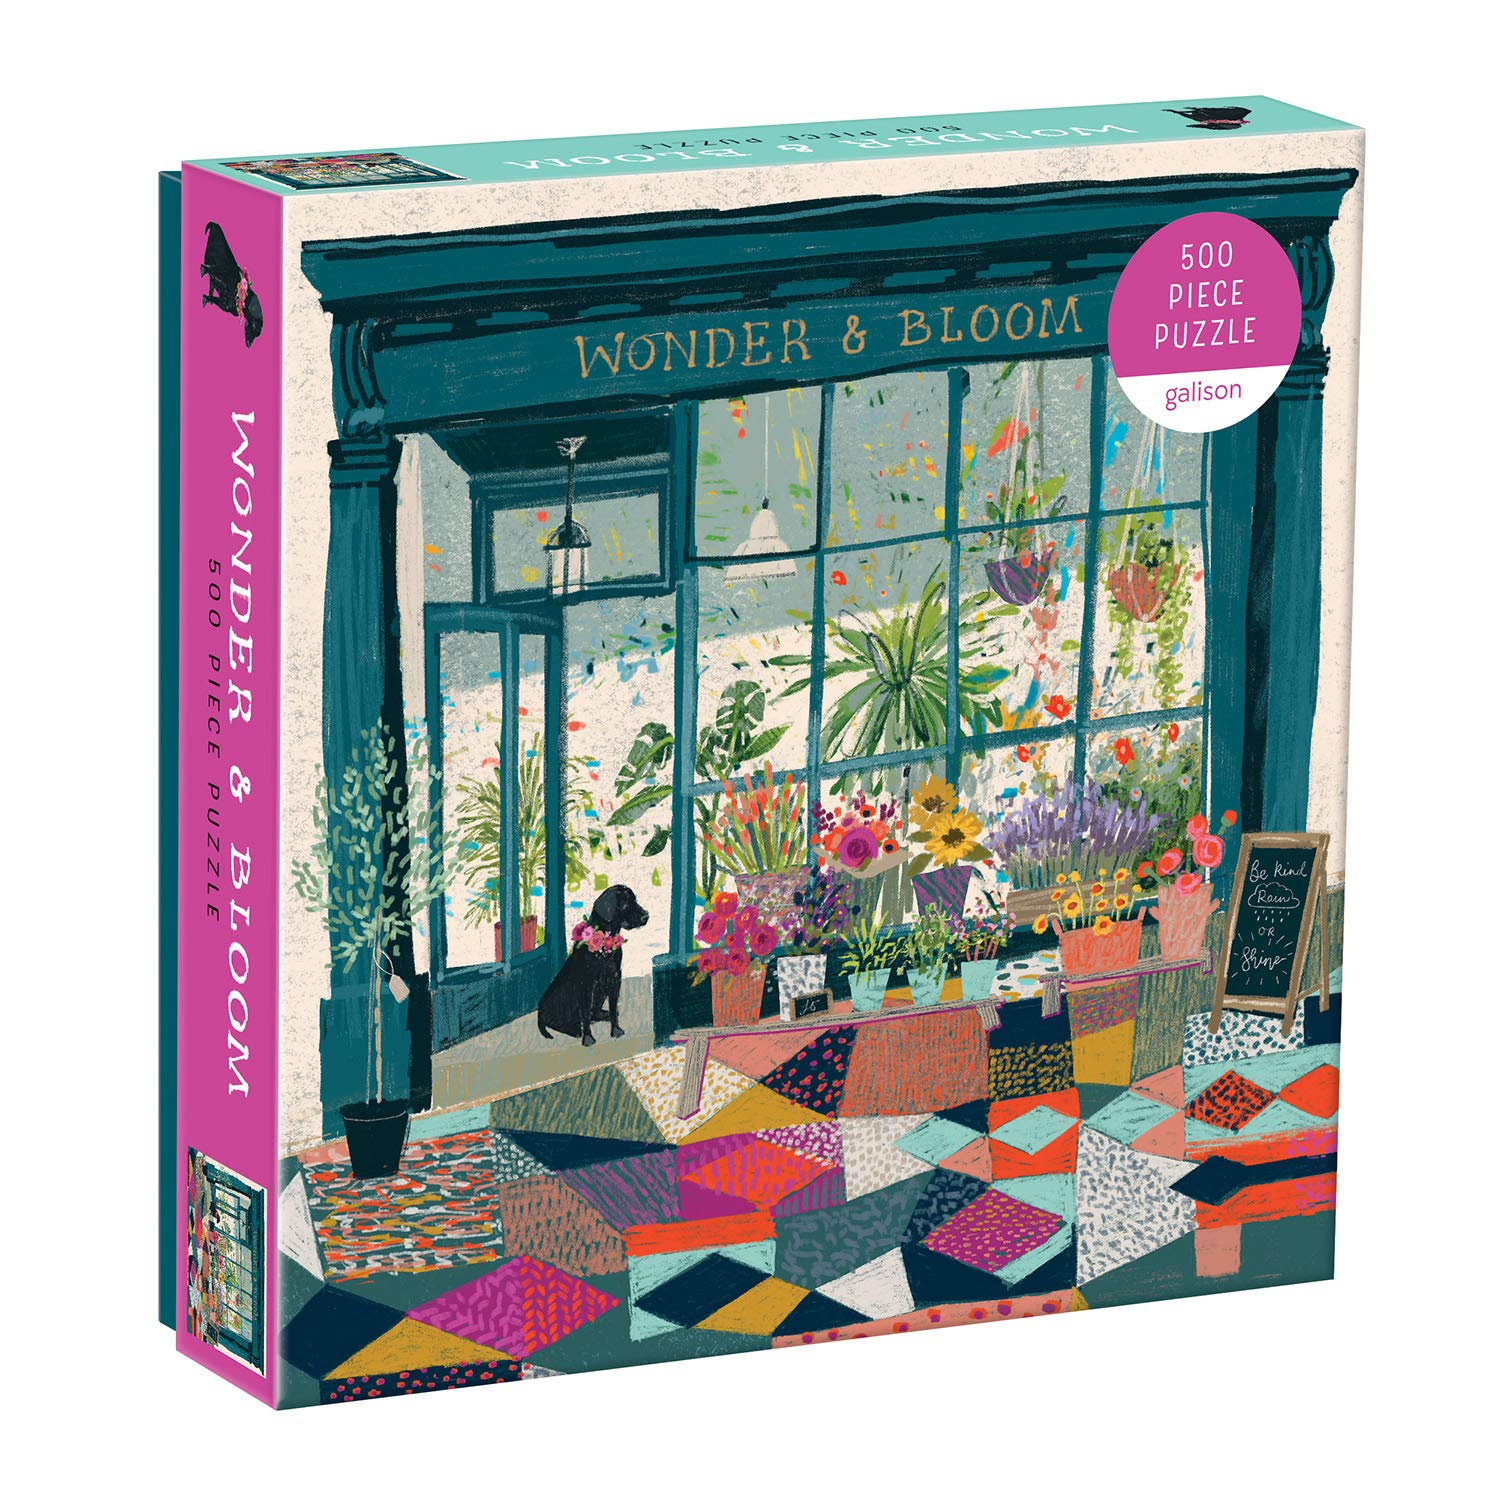 "Galison Wonder & Bloom Puzzle, 500 Pieces, 20""x20"" – Brightly Colored Scene of a Welcoming Local Plant Shop – Challenging, Perfect for Family Fun, Multicolor"